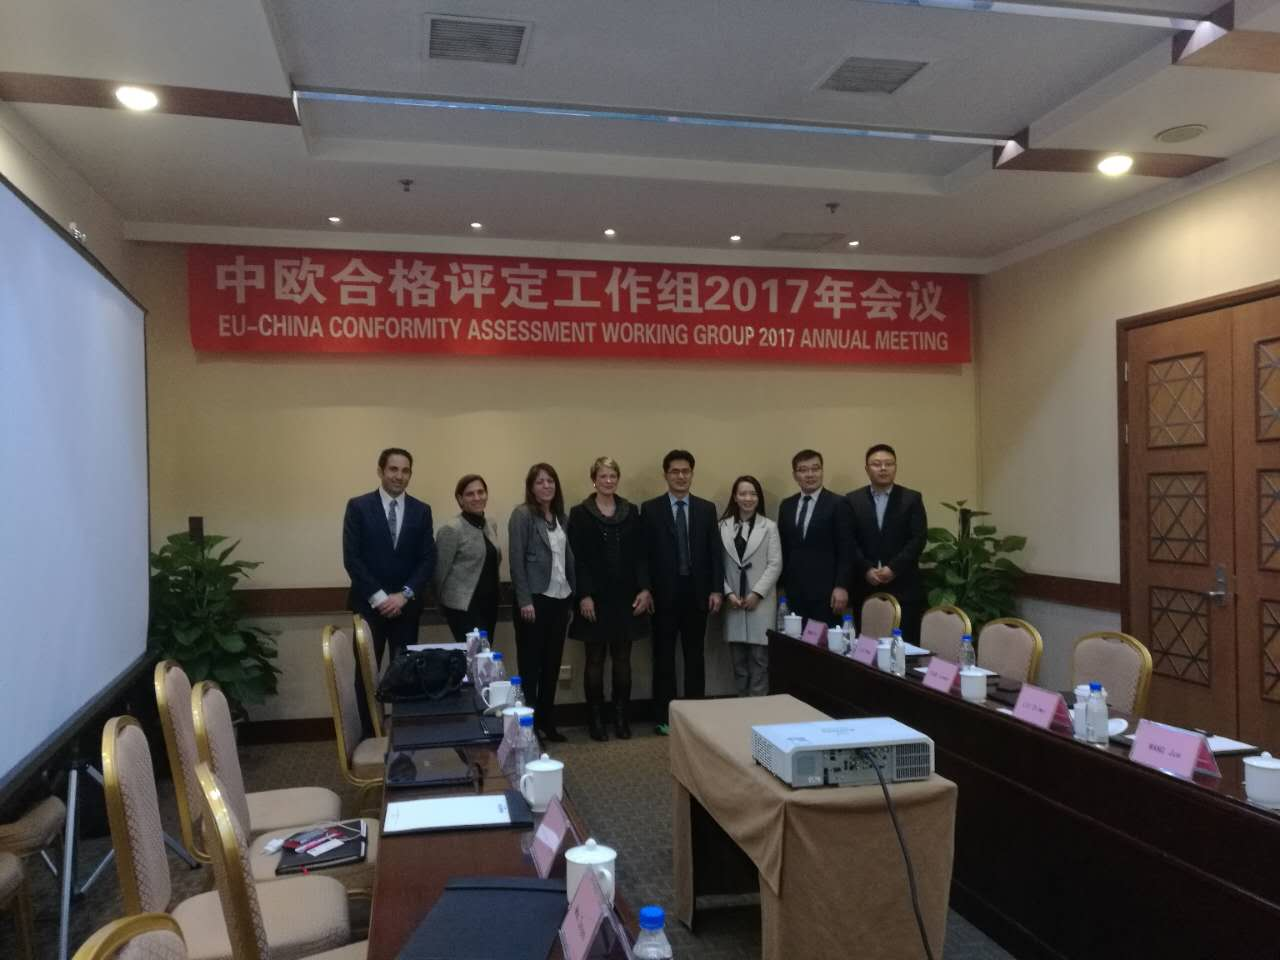 23/11/2017 EU-China conformity assessment working group 2017 meeting